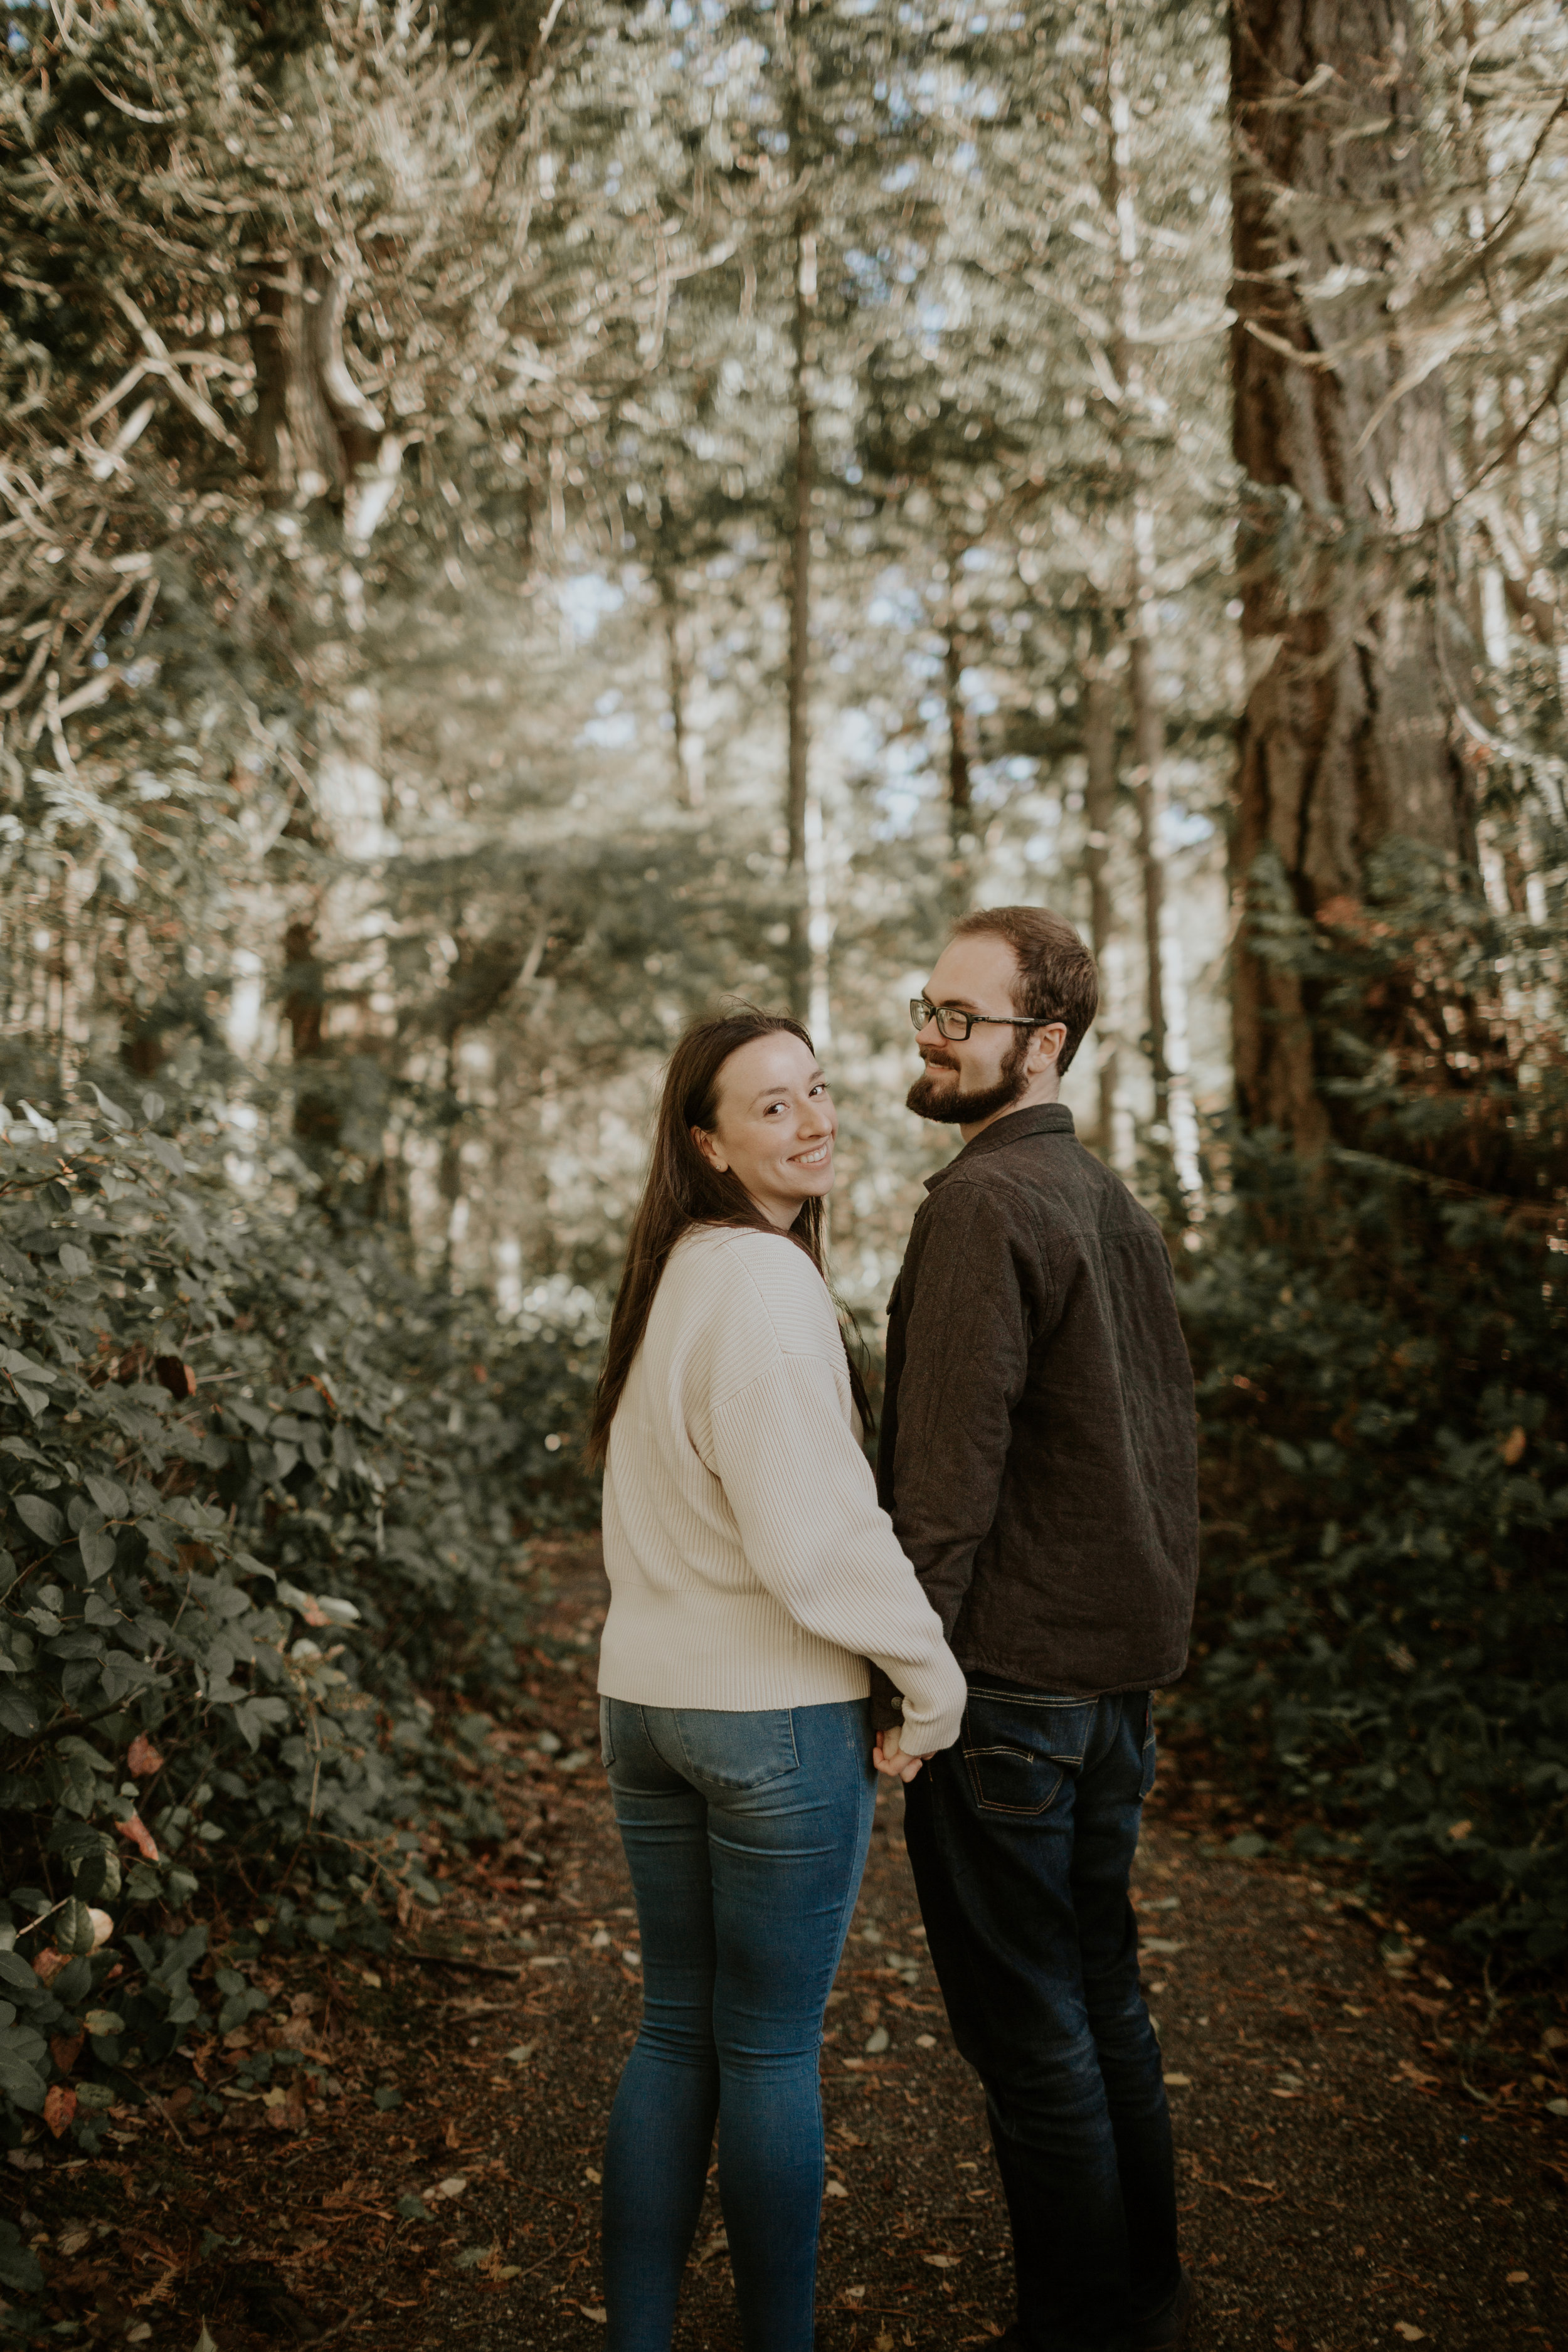 PNW-Olympic National Park-Salt Creek-engagement-Portrait-Port-Angeles-Washington-elopement-photographer-kayla-dawn-photography-kayladawnphoto-wedding-anniversary-photoshoot-olympic-peninsula-44.jpg